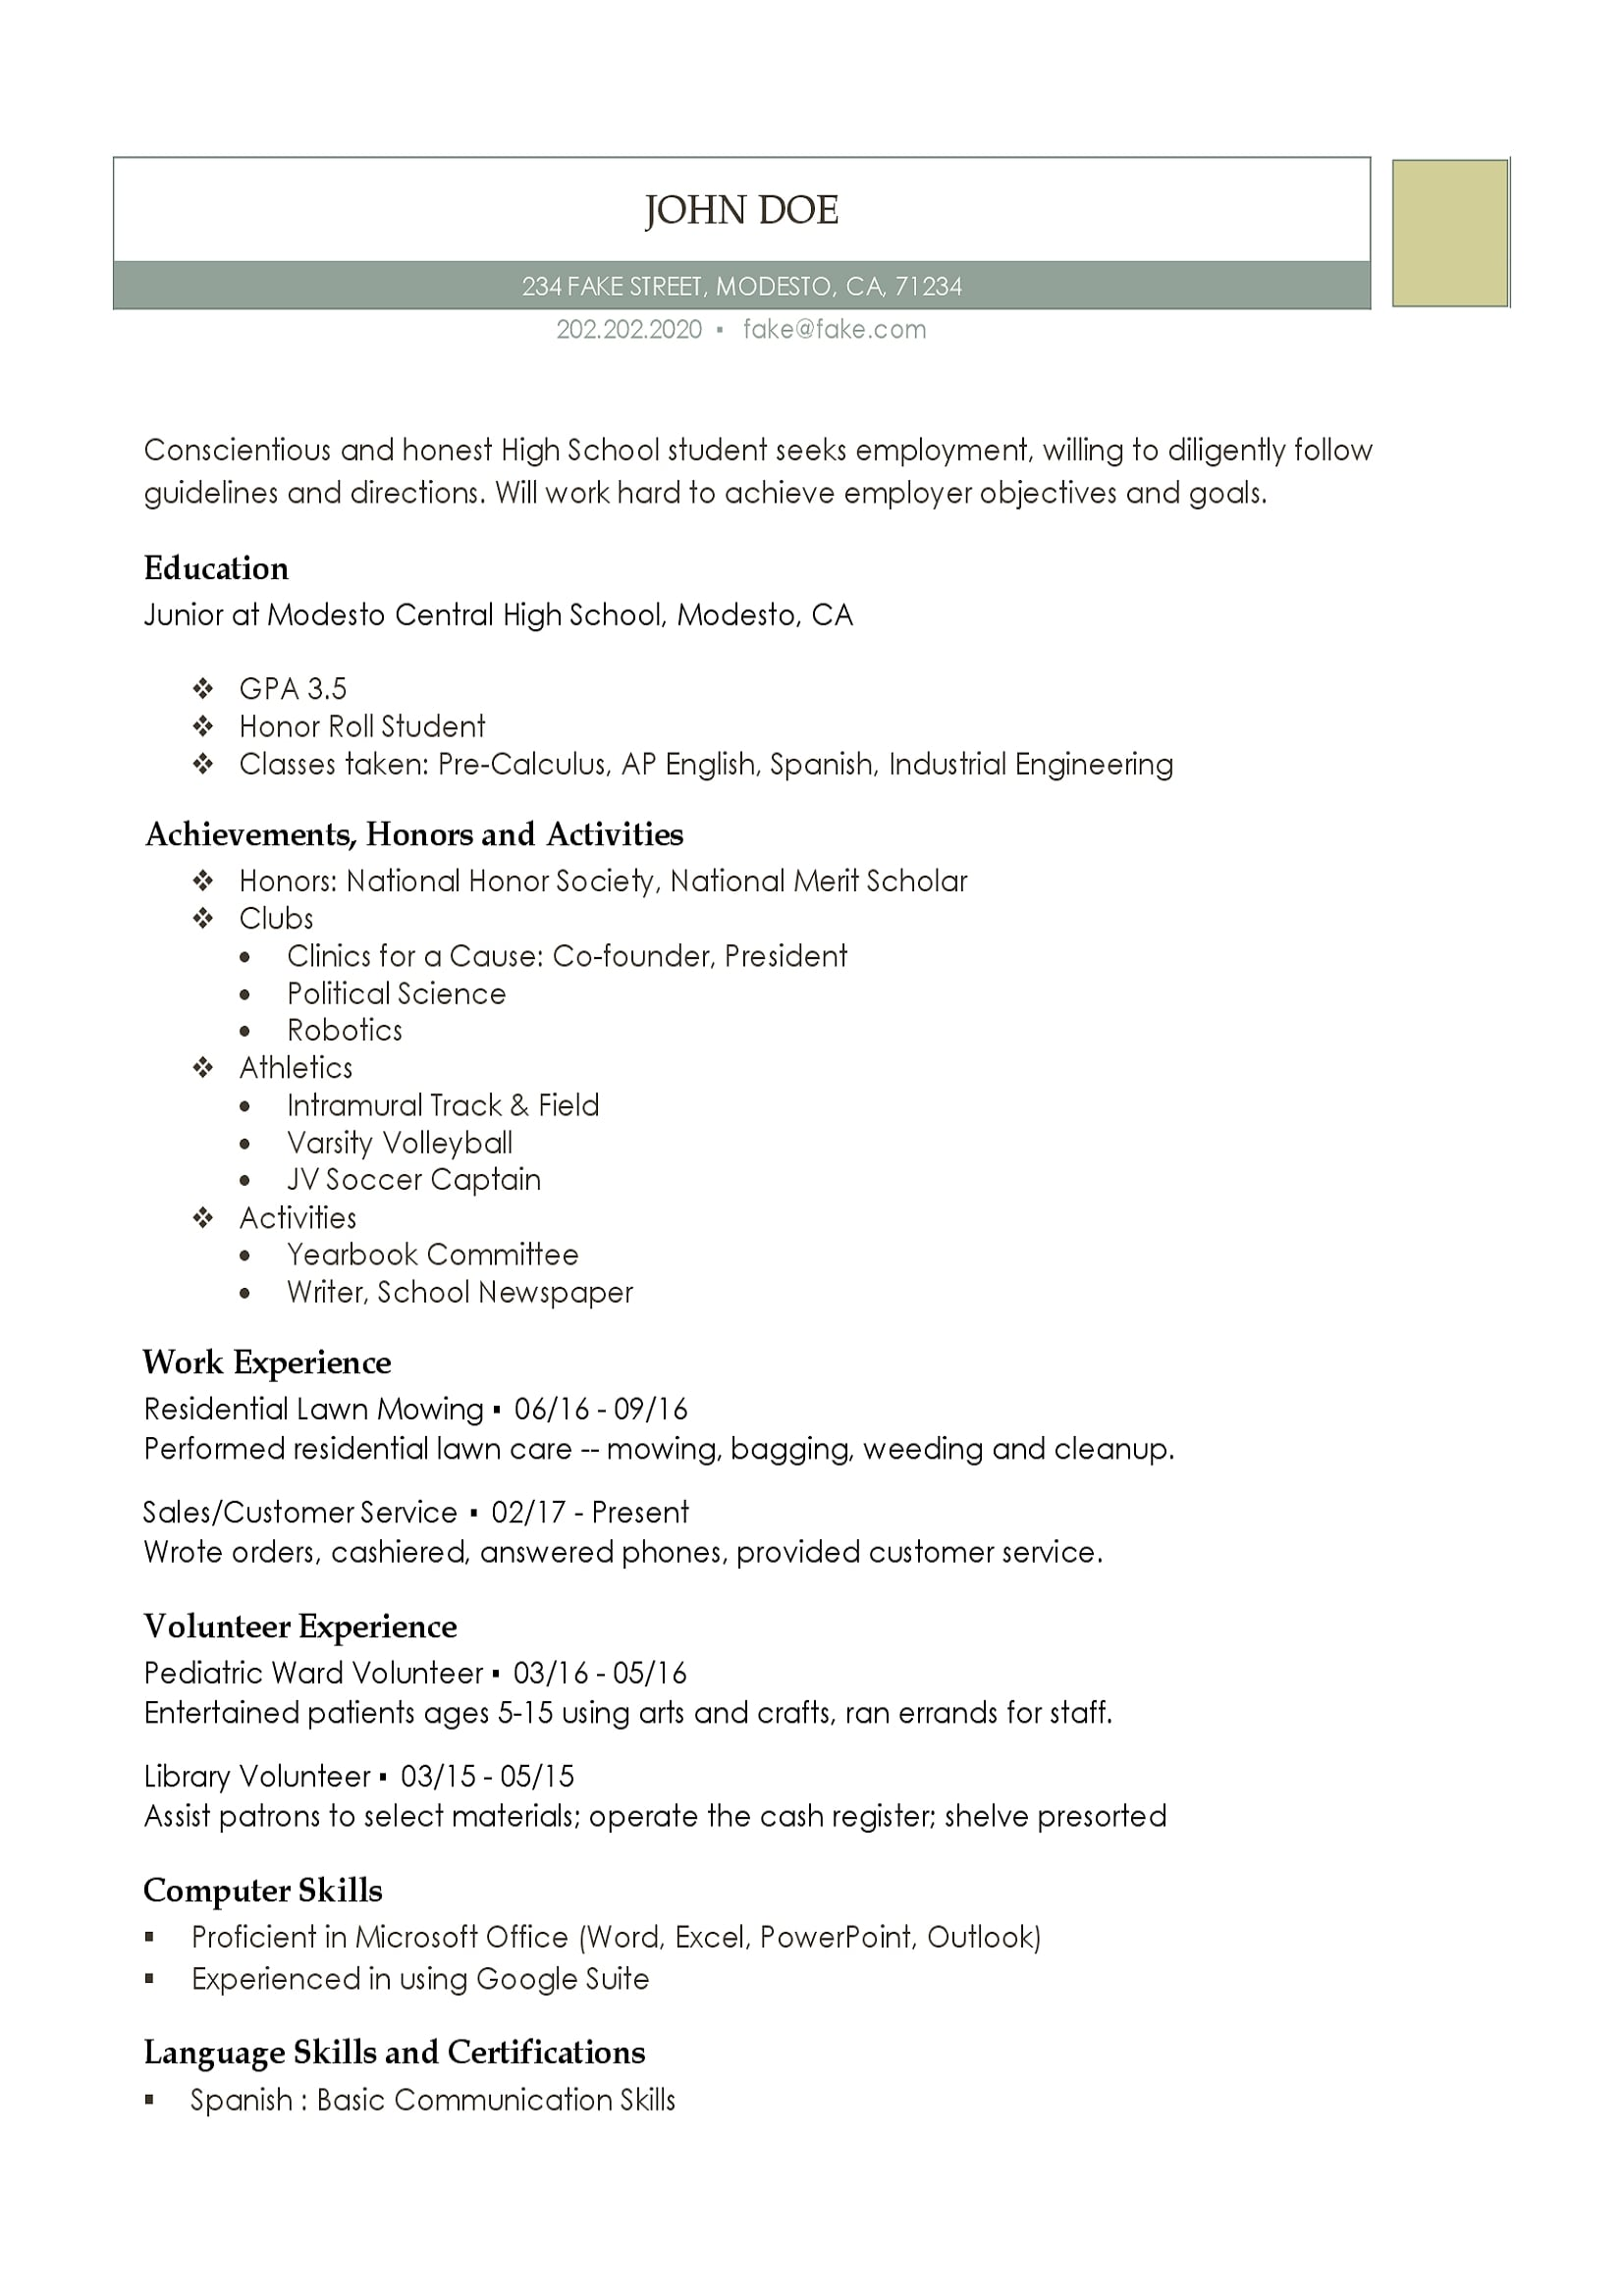 Skills For A High School Student Resume High School Resume Resumes Perfect For High School Students